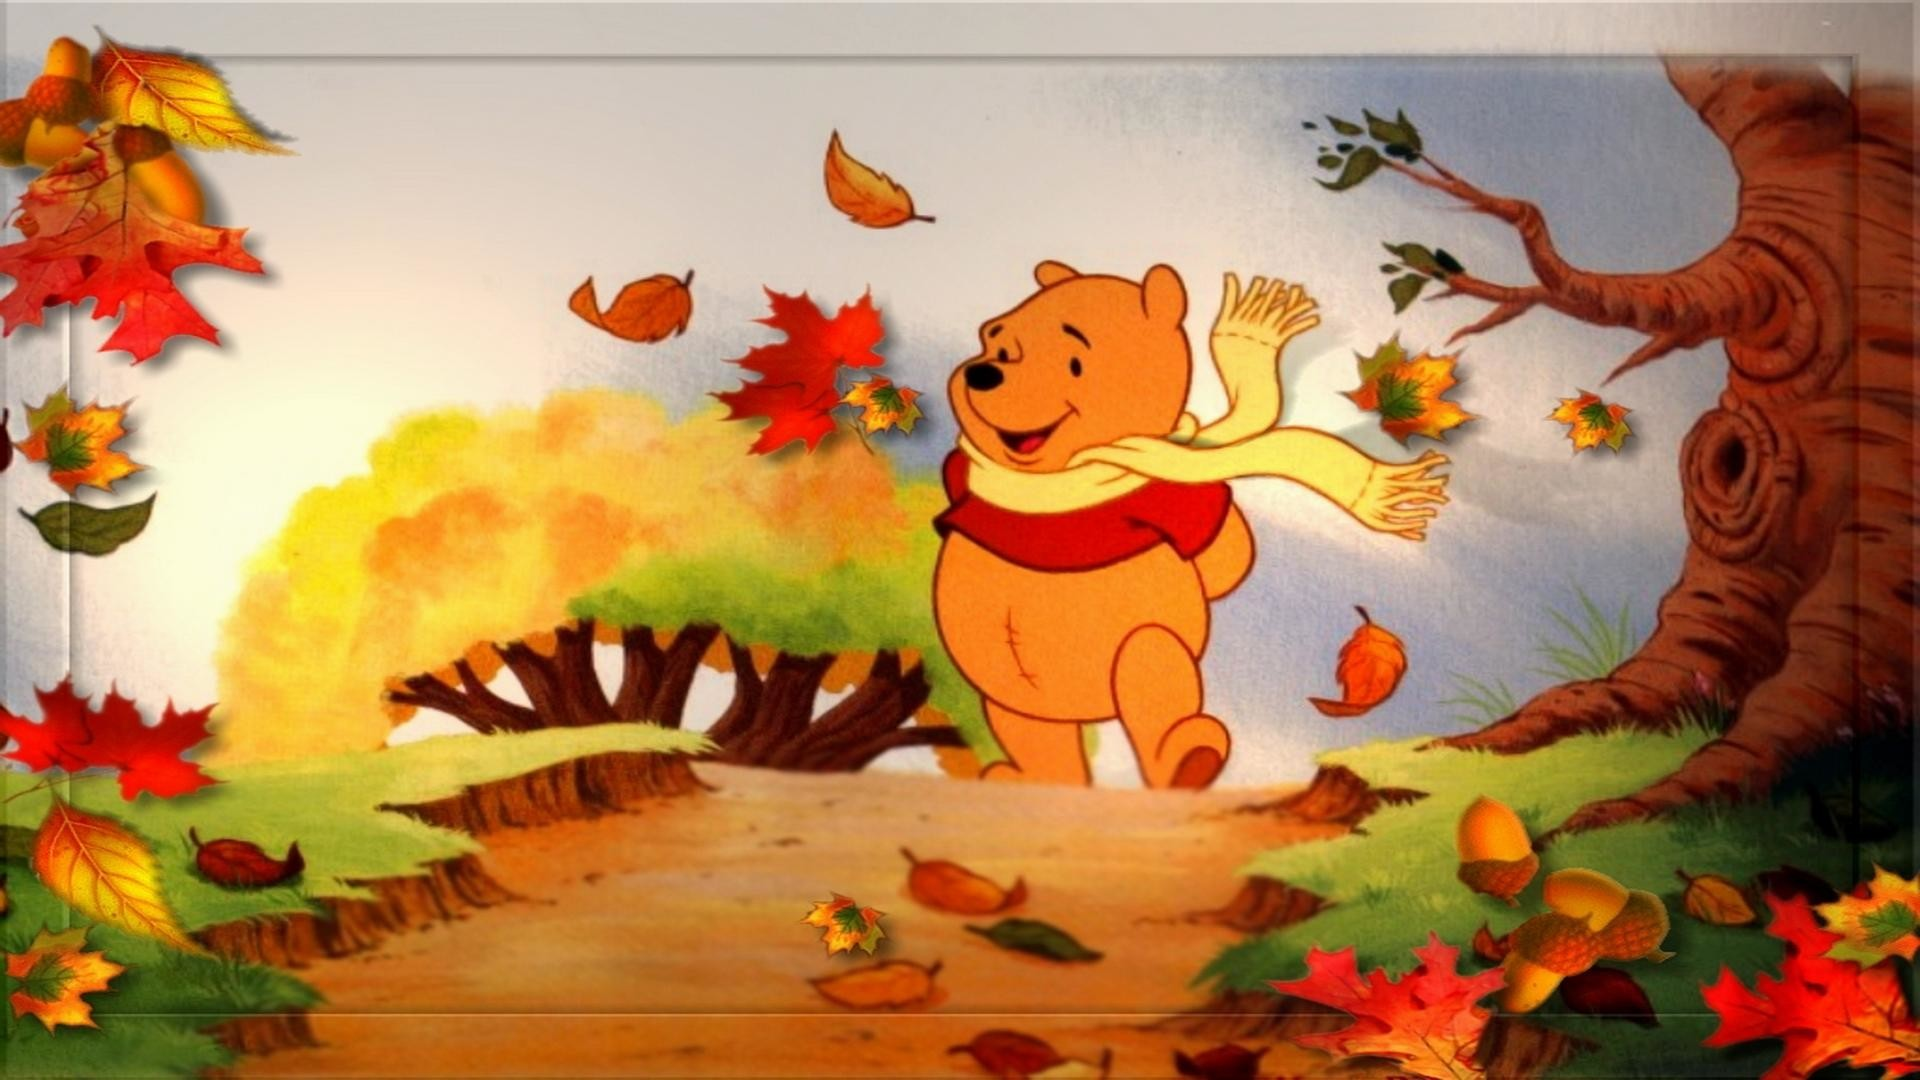 Thanksgiving wallpaper and screensavers 59 images - Thanksgiving screen backgrounds ...